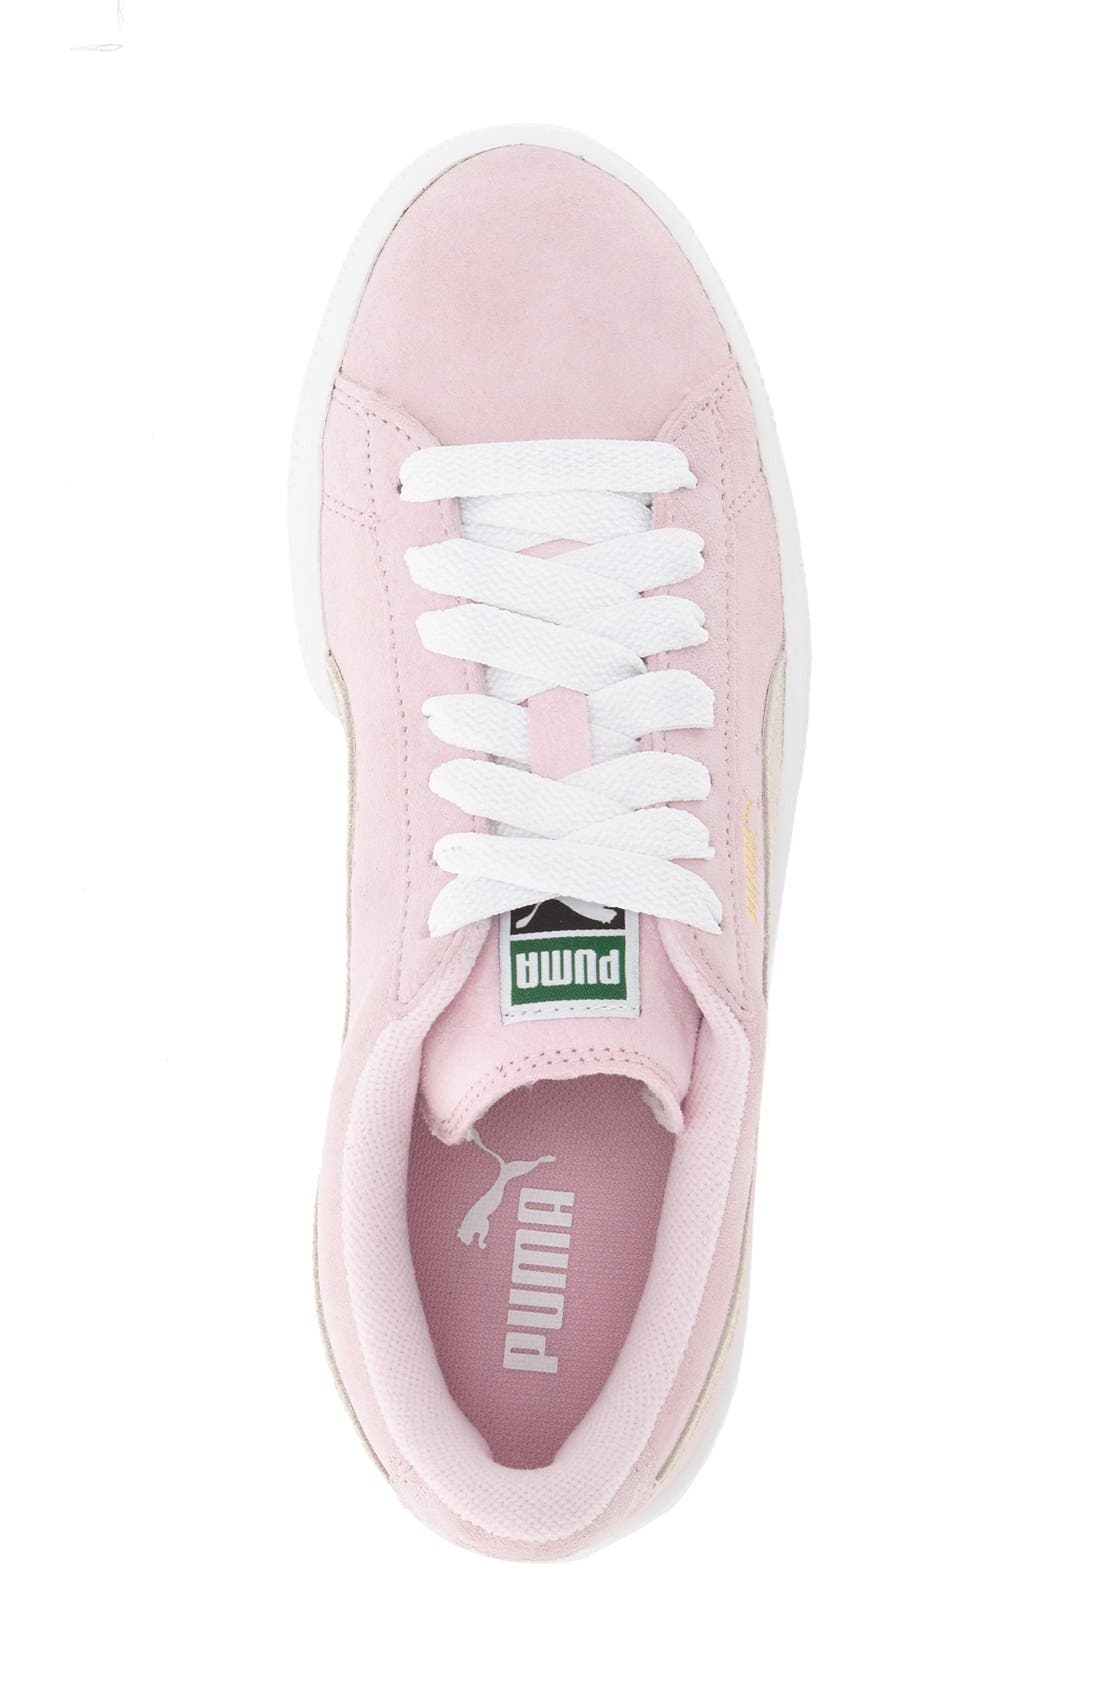 'Suede Jr.' Sneaker,                             Alternate thumbnail 3, color,                             Pink Lady/ White/ Team Gold